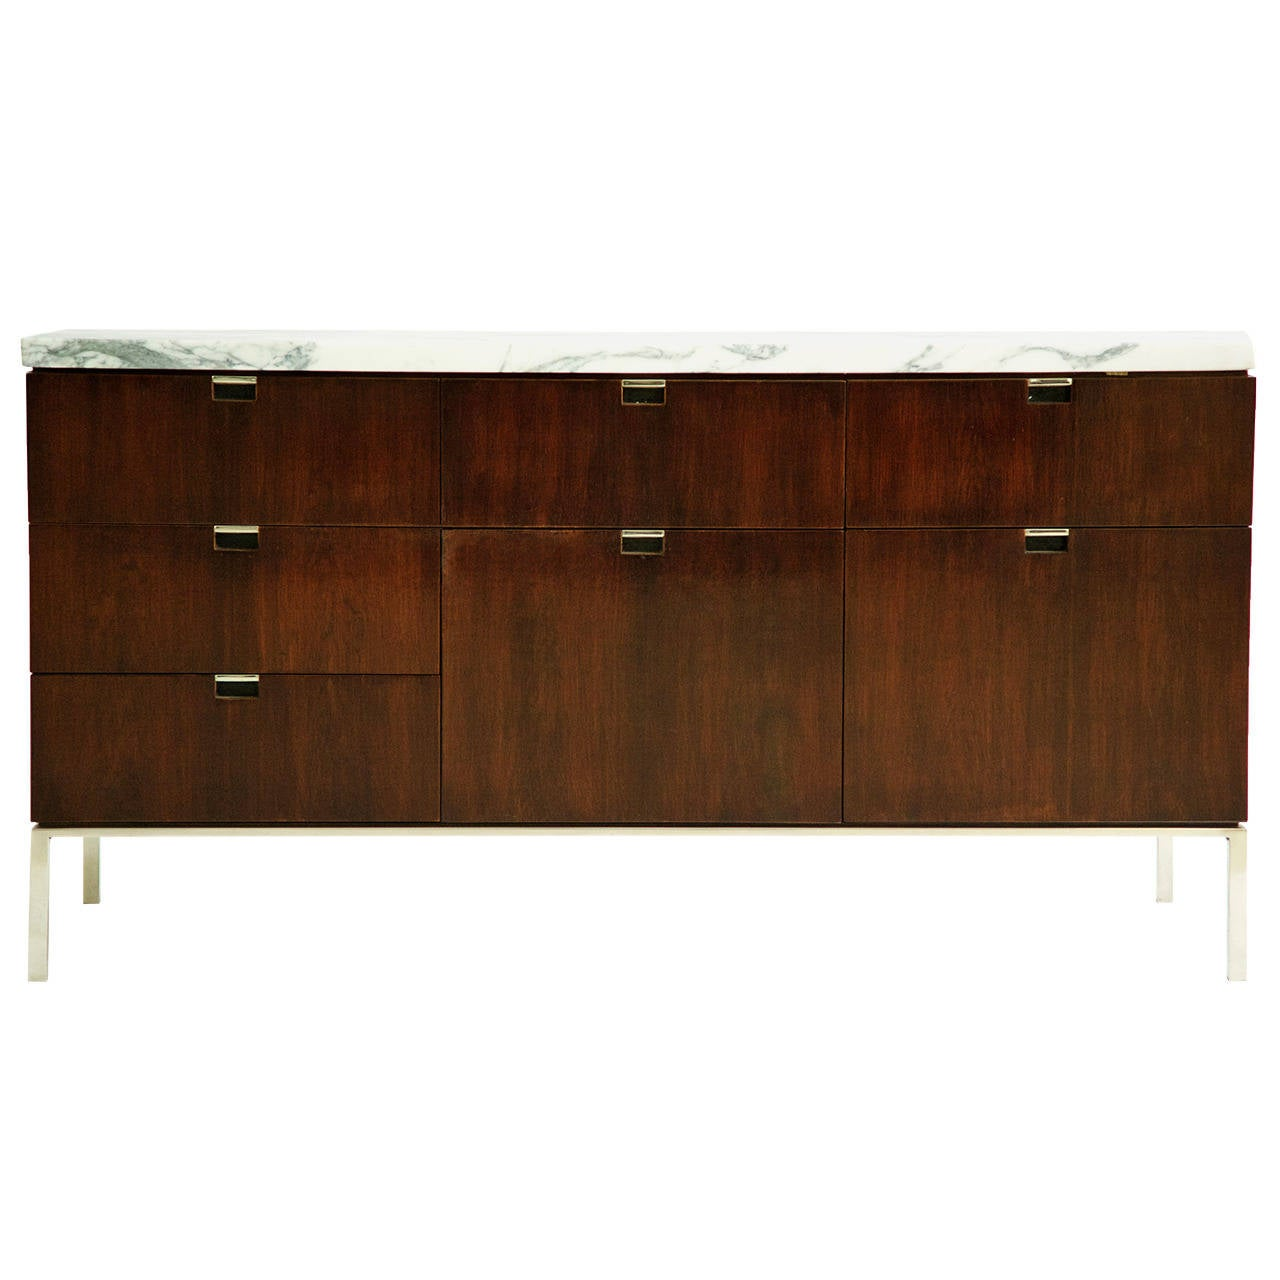 Florence Knoll Credenza Custom Marble Top